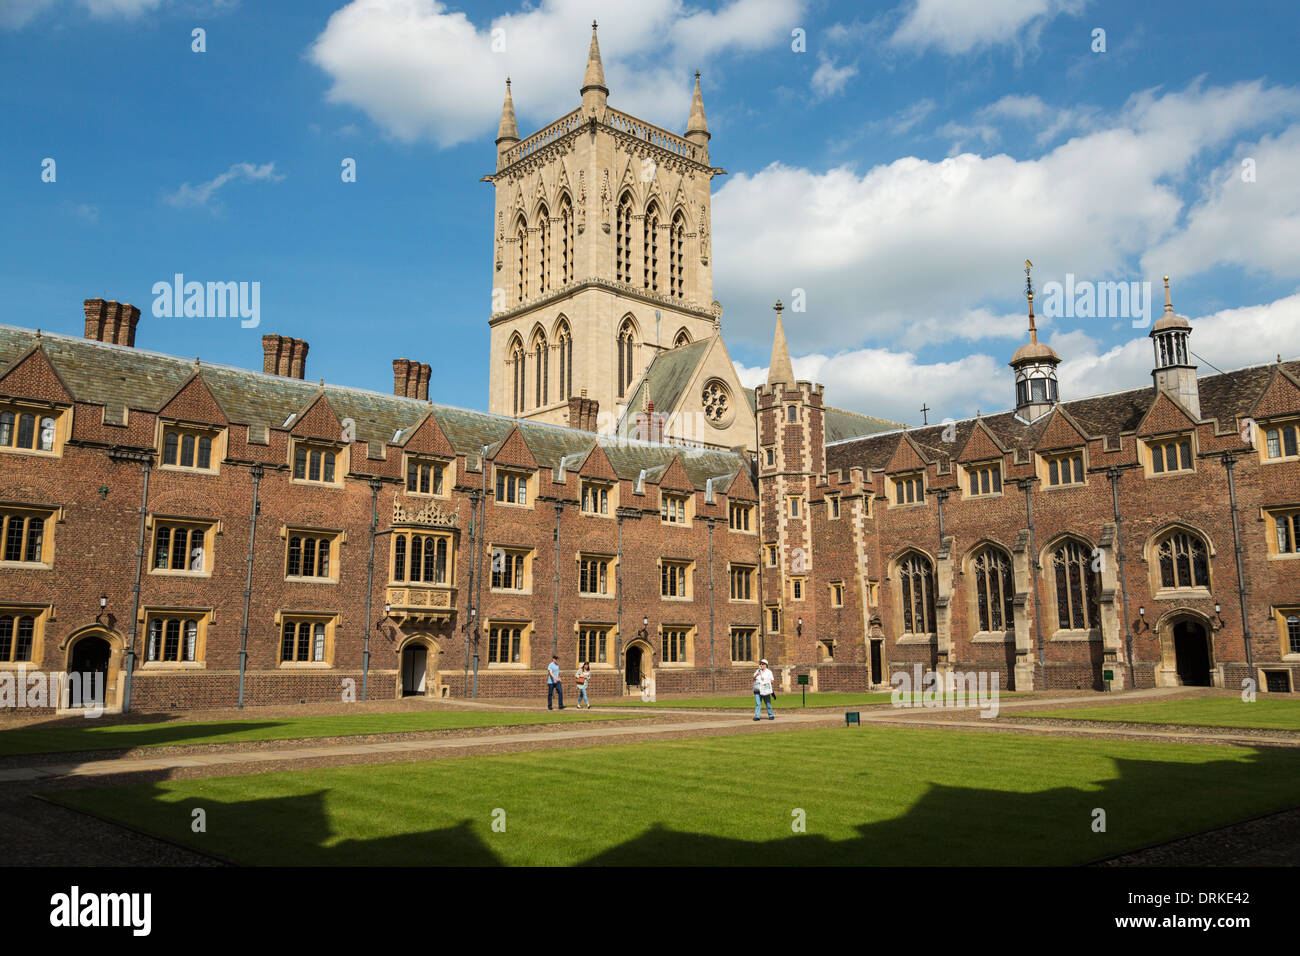 Tourists visit St Johns College, Cambridge, England on sunny day - Stock Image